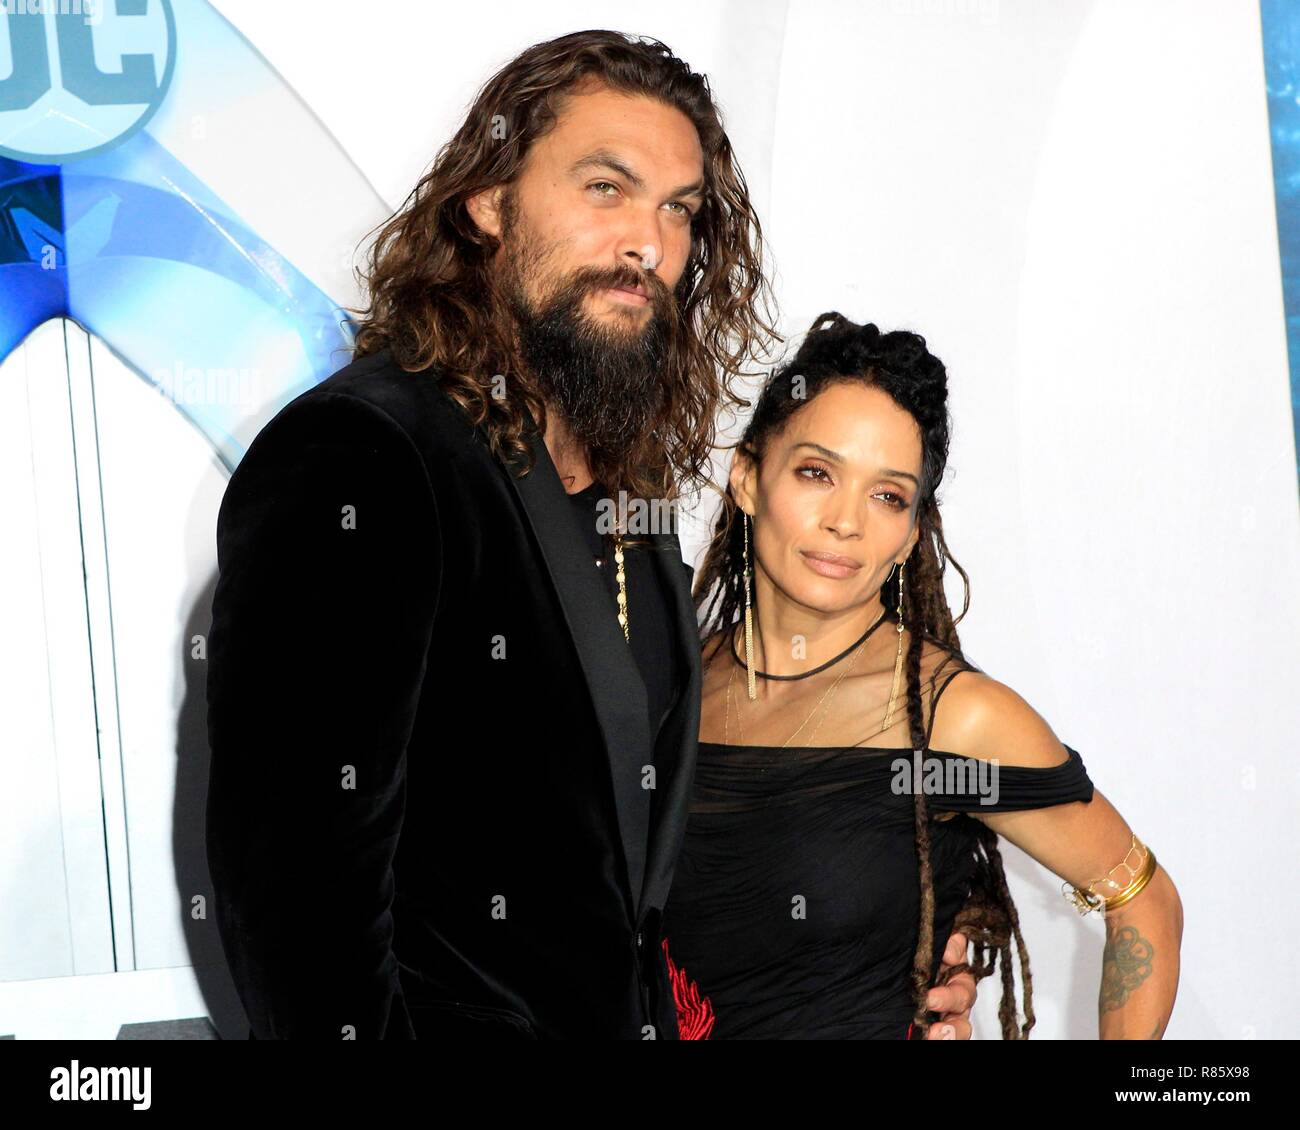 Jason Momoa And Lisa Bonet Stock Photos & Jason Momoa And